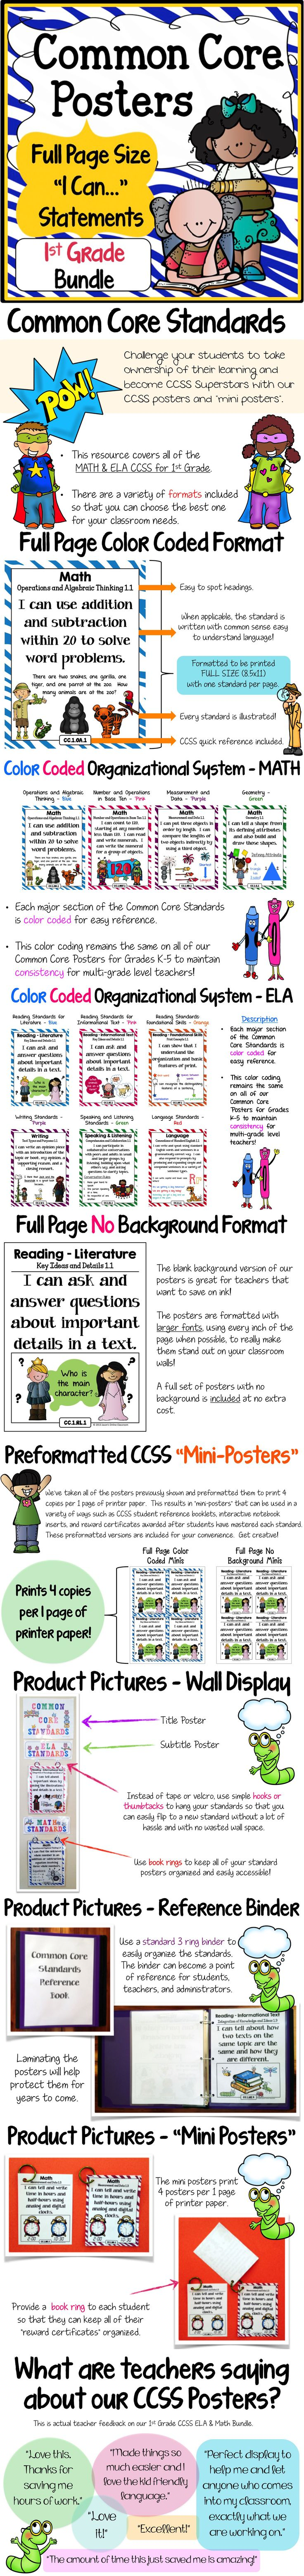 "1st Grade Common Core Posters! Full page size with 1 standard per page - LARGE fonts and illustrations! ""Mini-posters"" included as well. $"